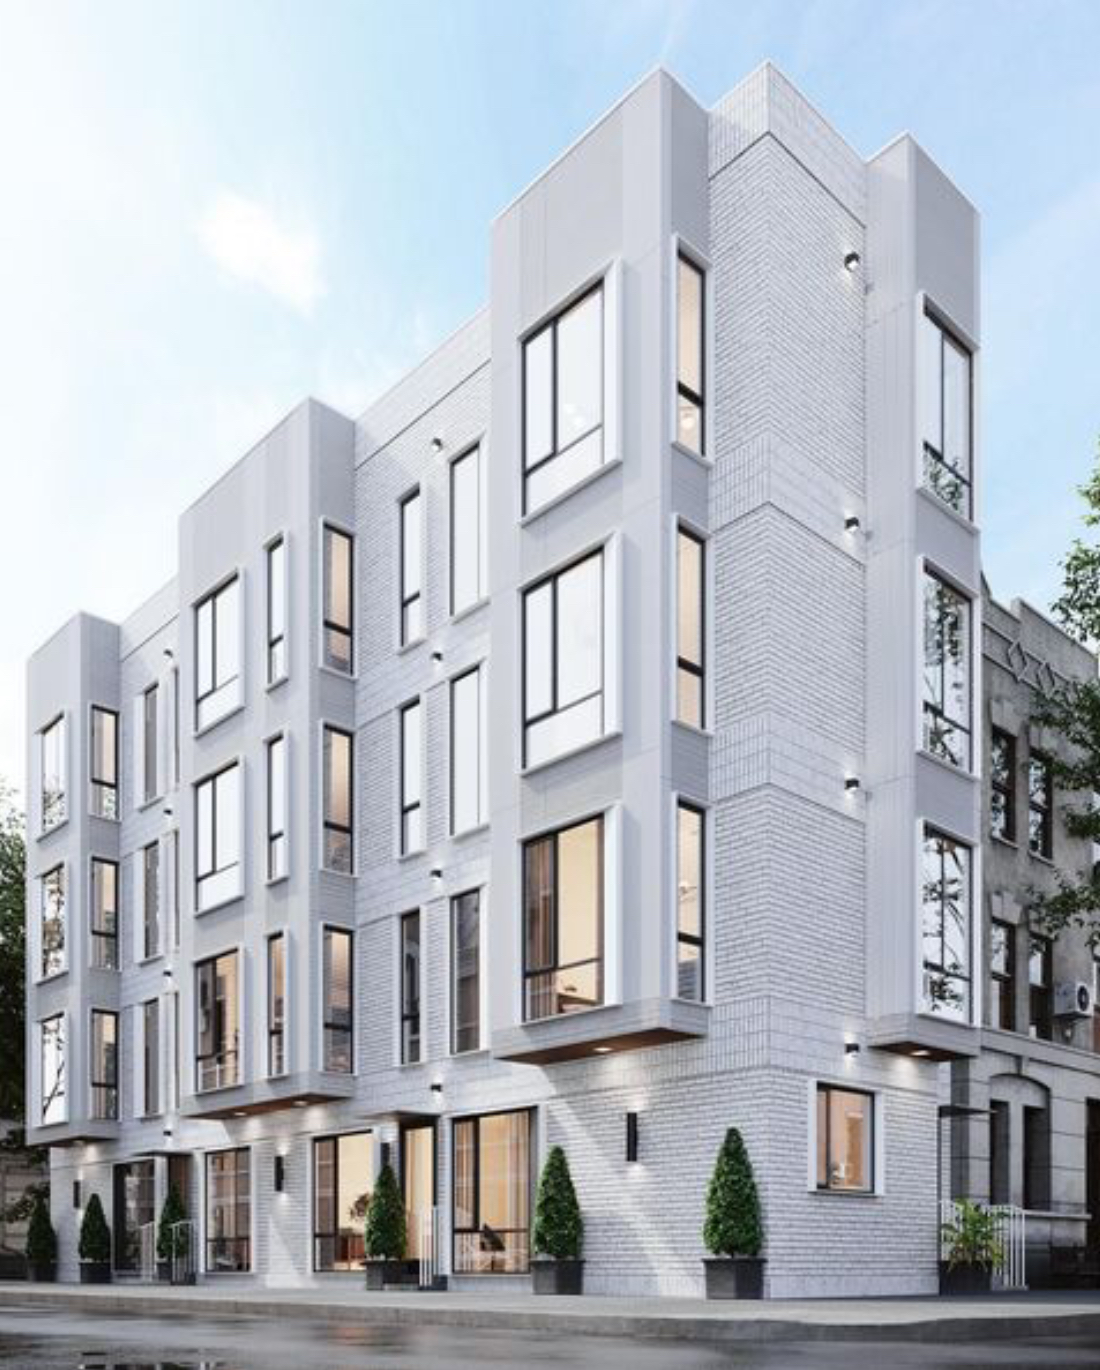 Rendering of 1754 Wylie Street. Credit: M Architects.